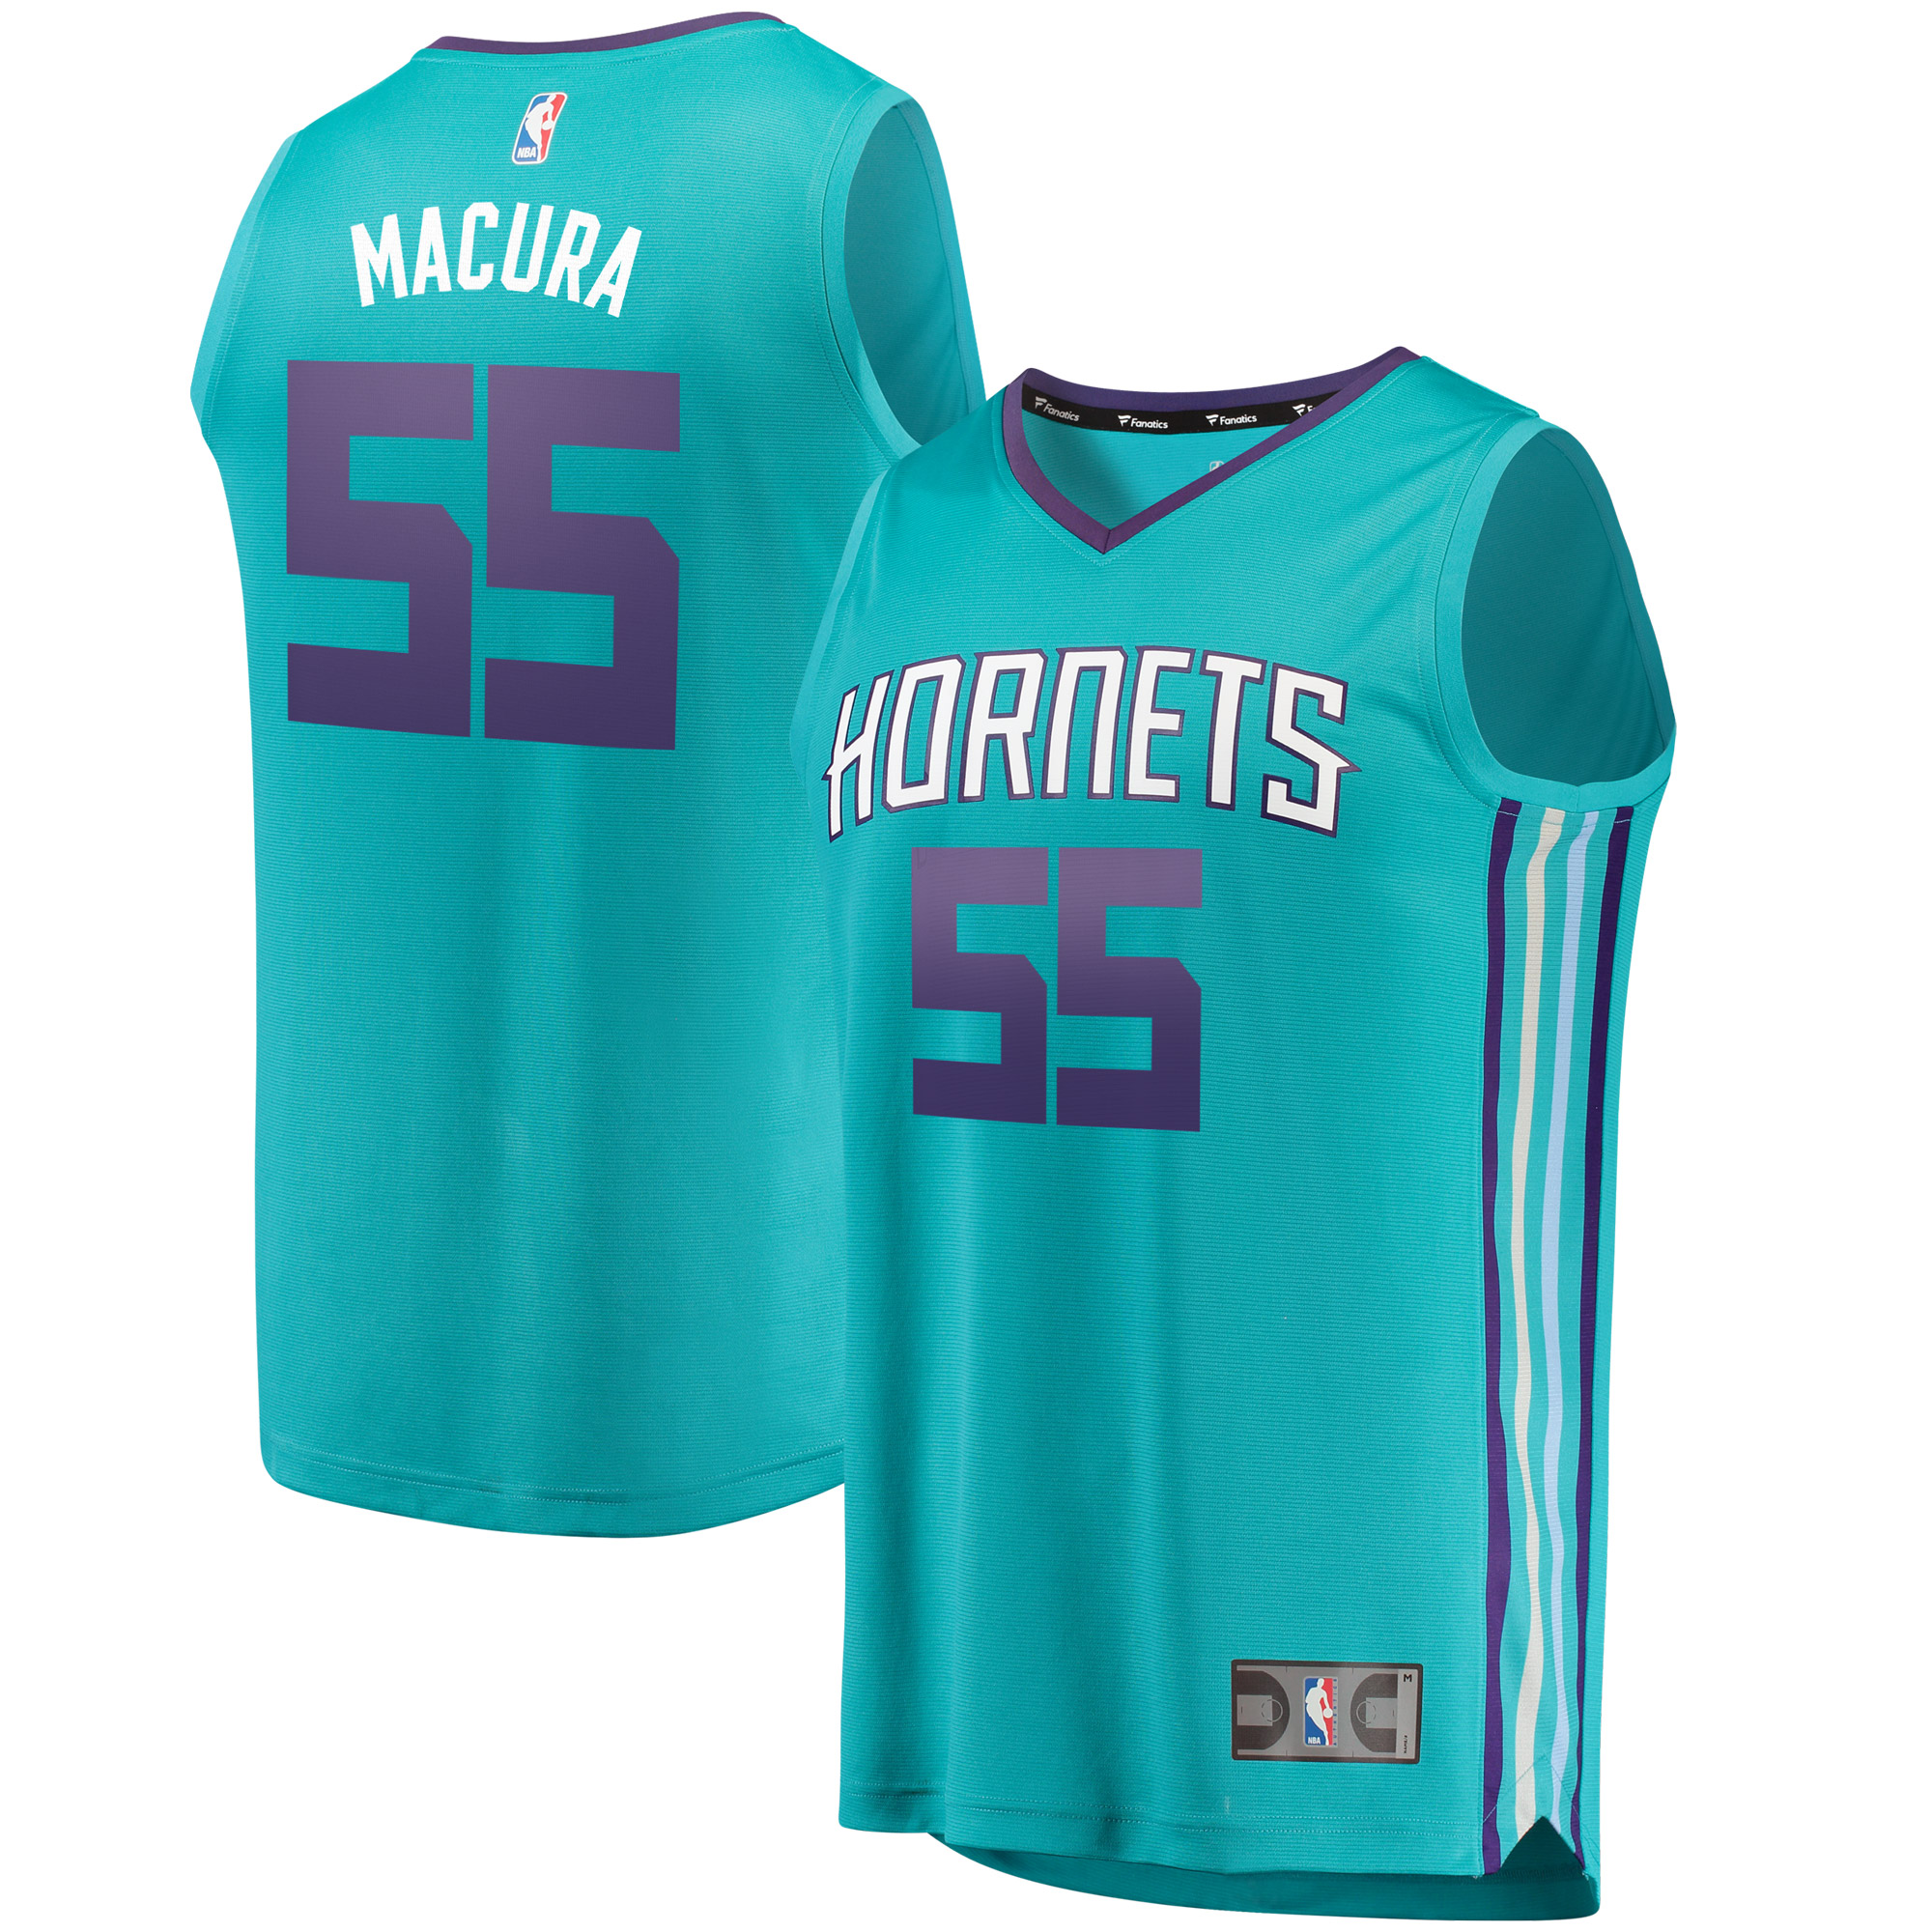 J.P. Macura Charlotte Hornets Fanatics Branded Fast Break Replica Jersey - Icon Edition - Teal